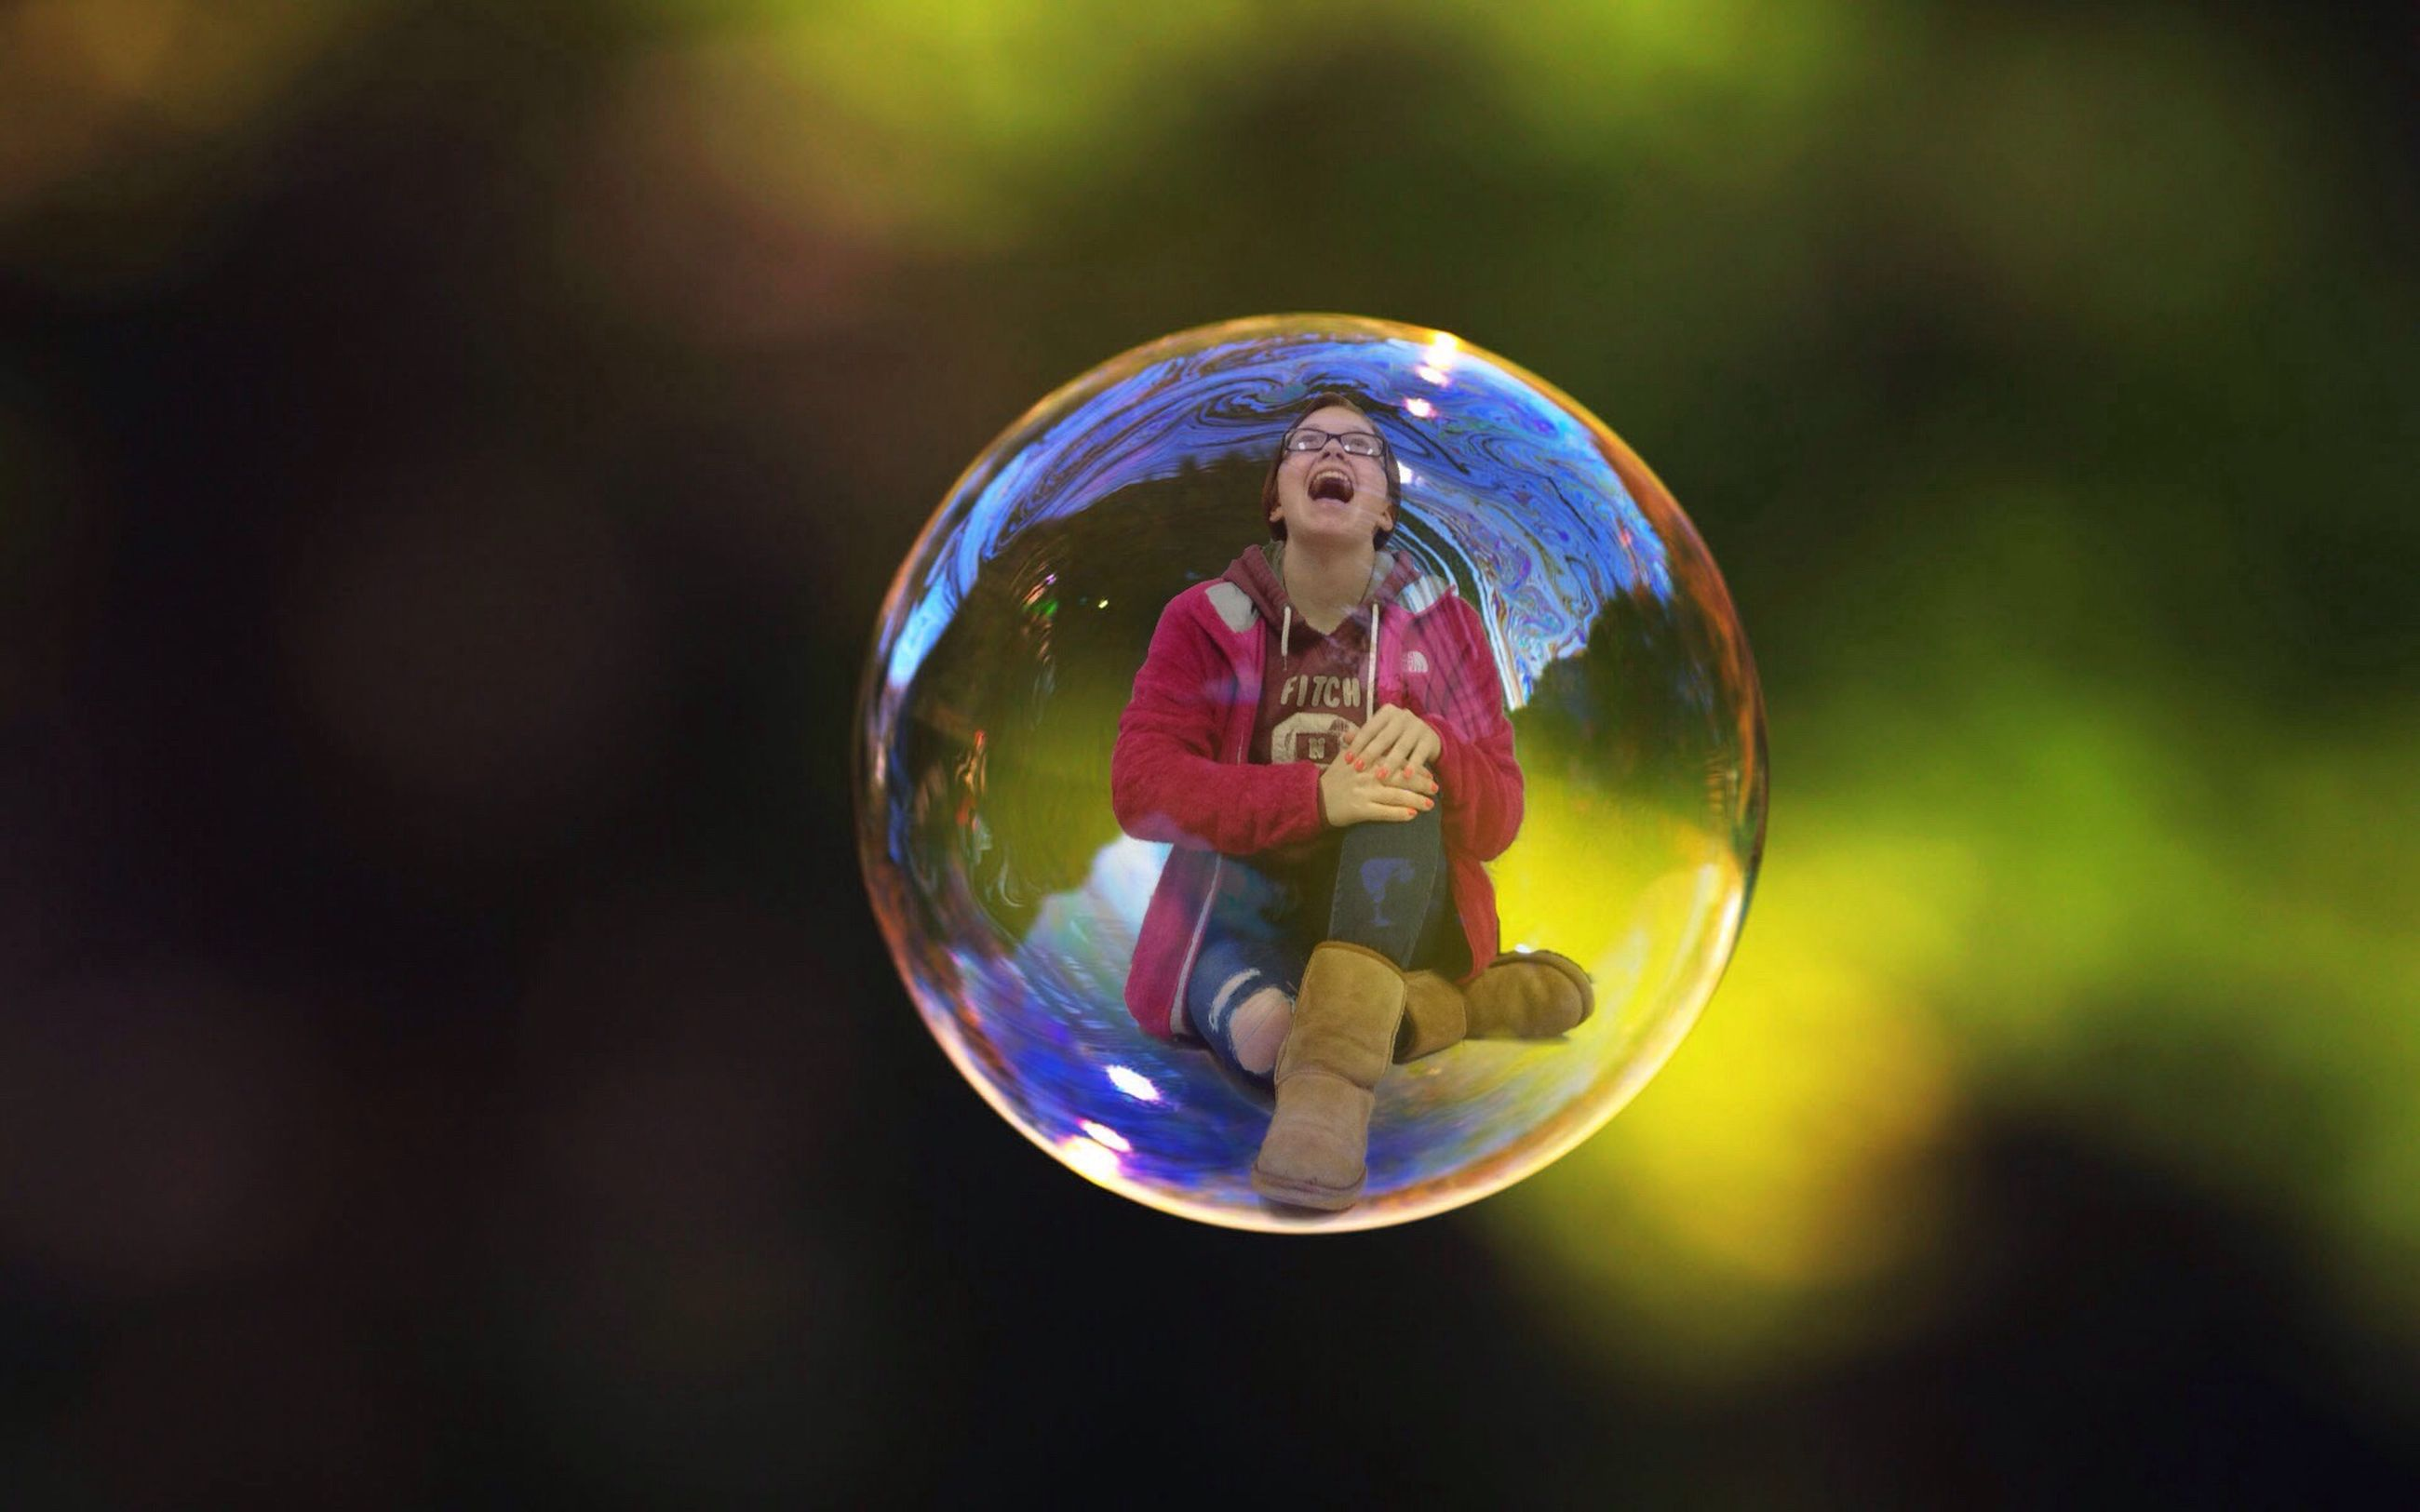 focus on foreground, bubble, close-up, childhood, sphere, reflection, selective focus, transparent, ball, multi colored, glass - material, circle, leisure activity, blue, mid-air, day, fragility, outdoors